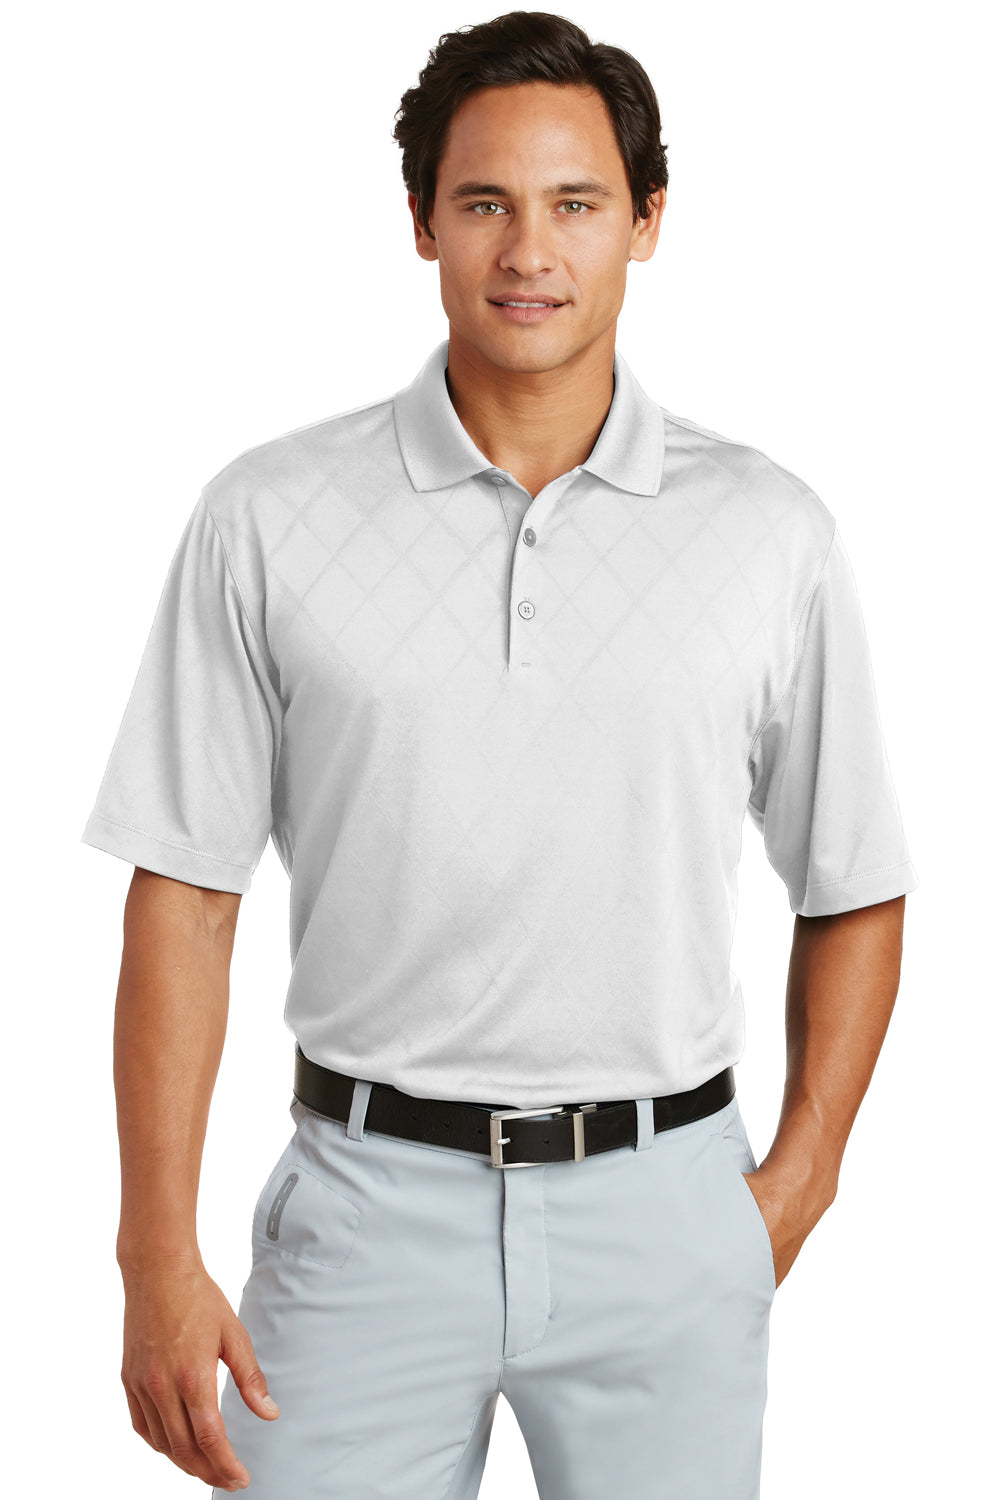 Nike 349899 Mens Dri-Fit Moisture Wicking Short Sleeve Polo Shirt White Front